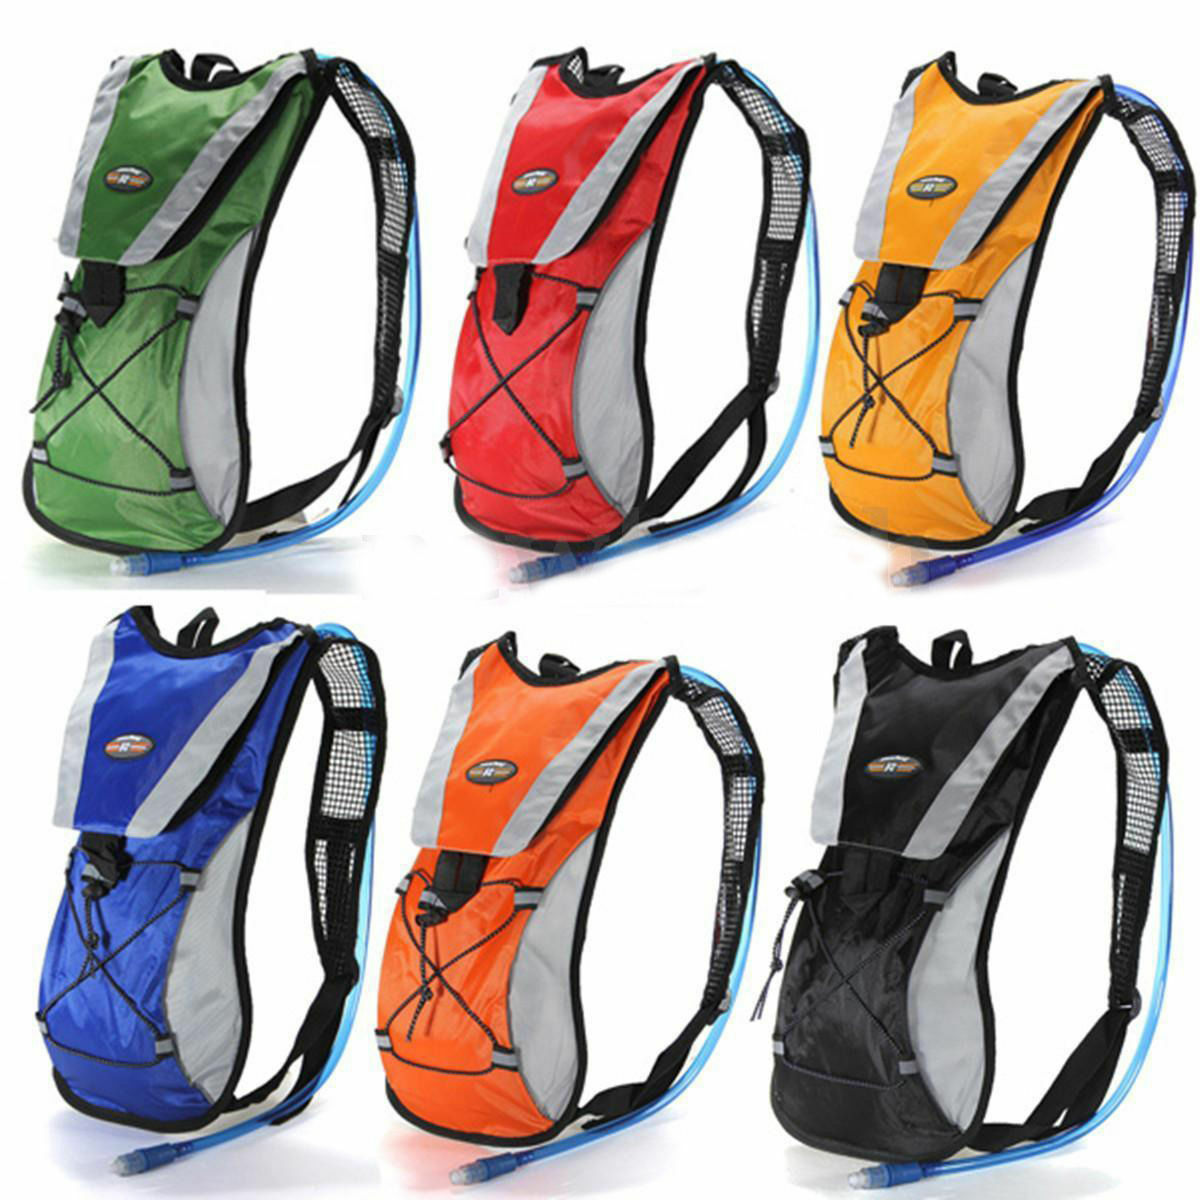 Sporting Backpack 2L Water Bladder Bag Hydration Packs Camelbak Hiking... - s l1600